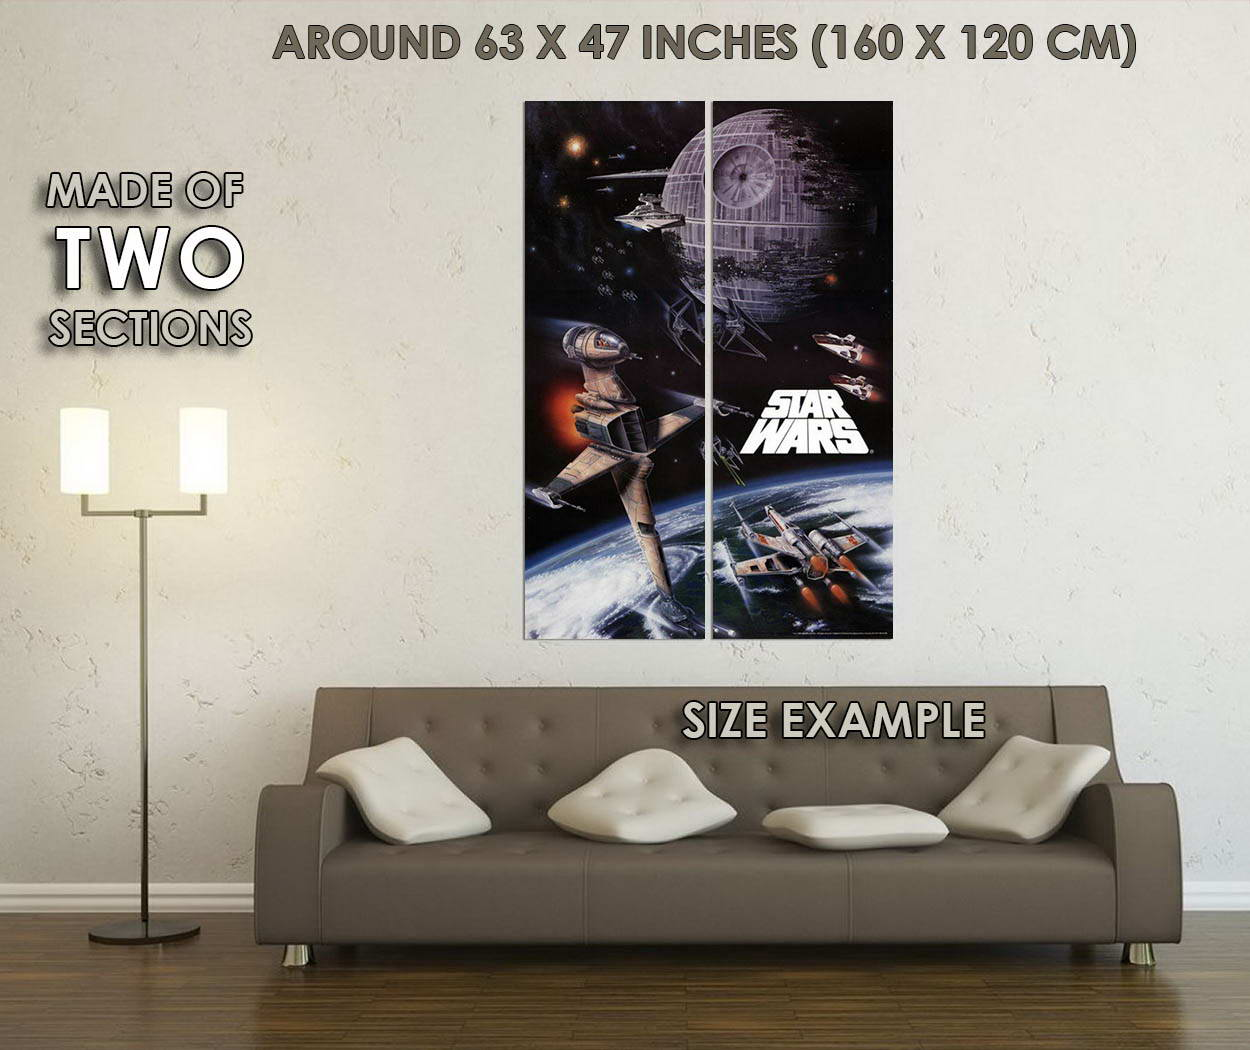 10459-Star-Wars-Rogue-Squadron-Game-LAMINATED-POSTER-CA thumbnail 6